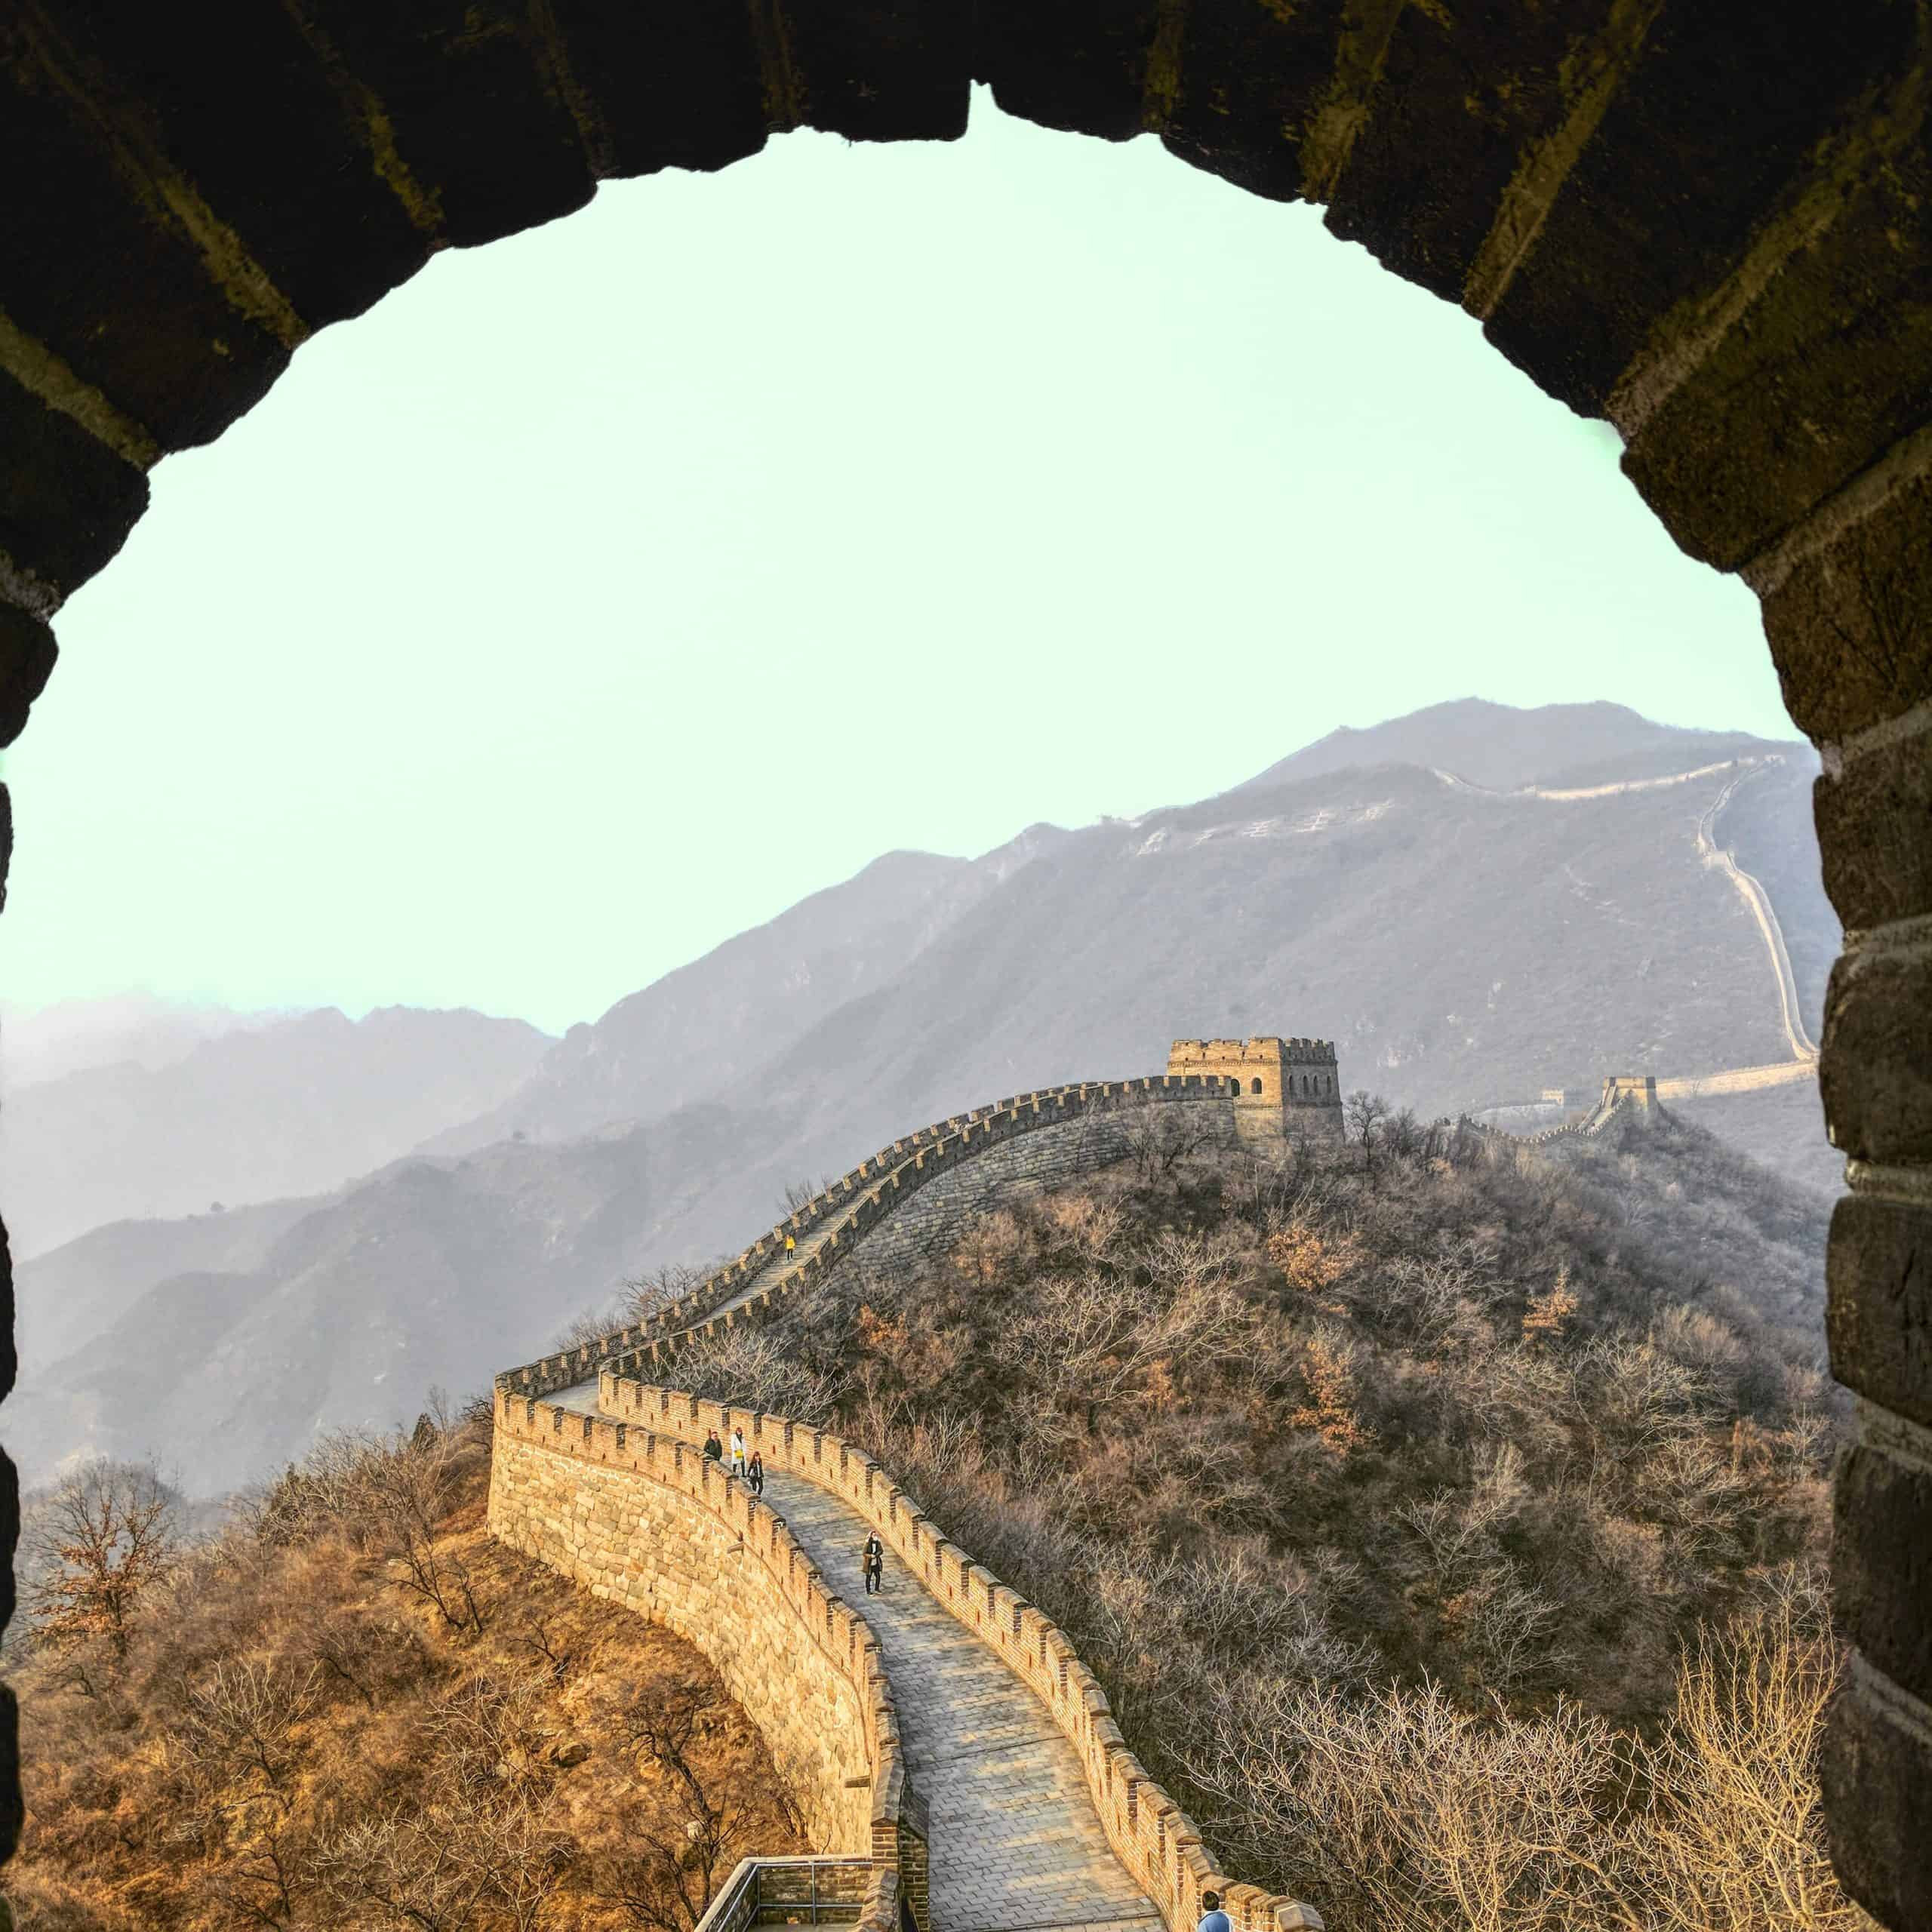 Bridges Of China - Some Bridges You Might Not Know